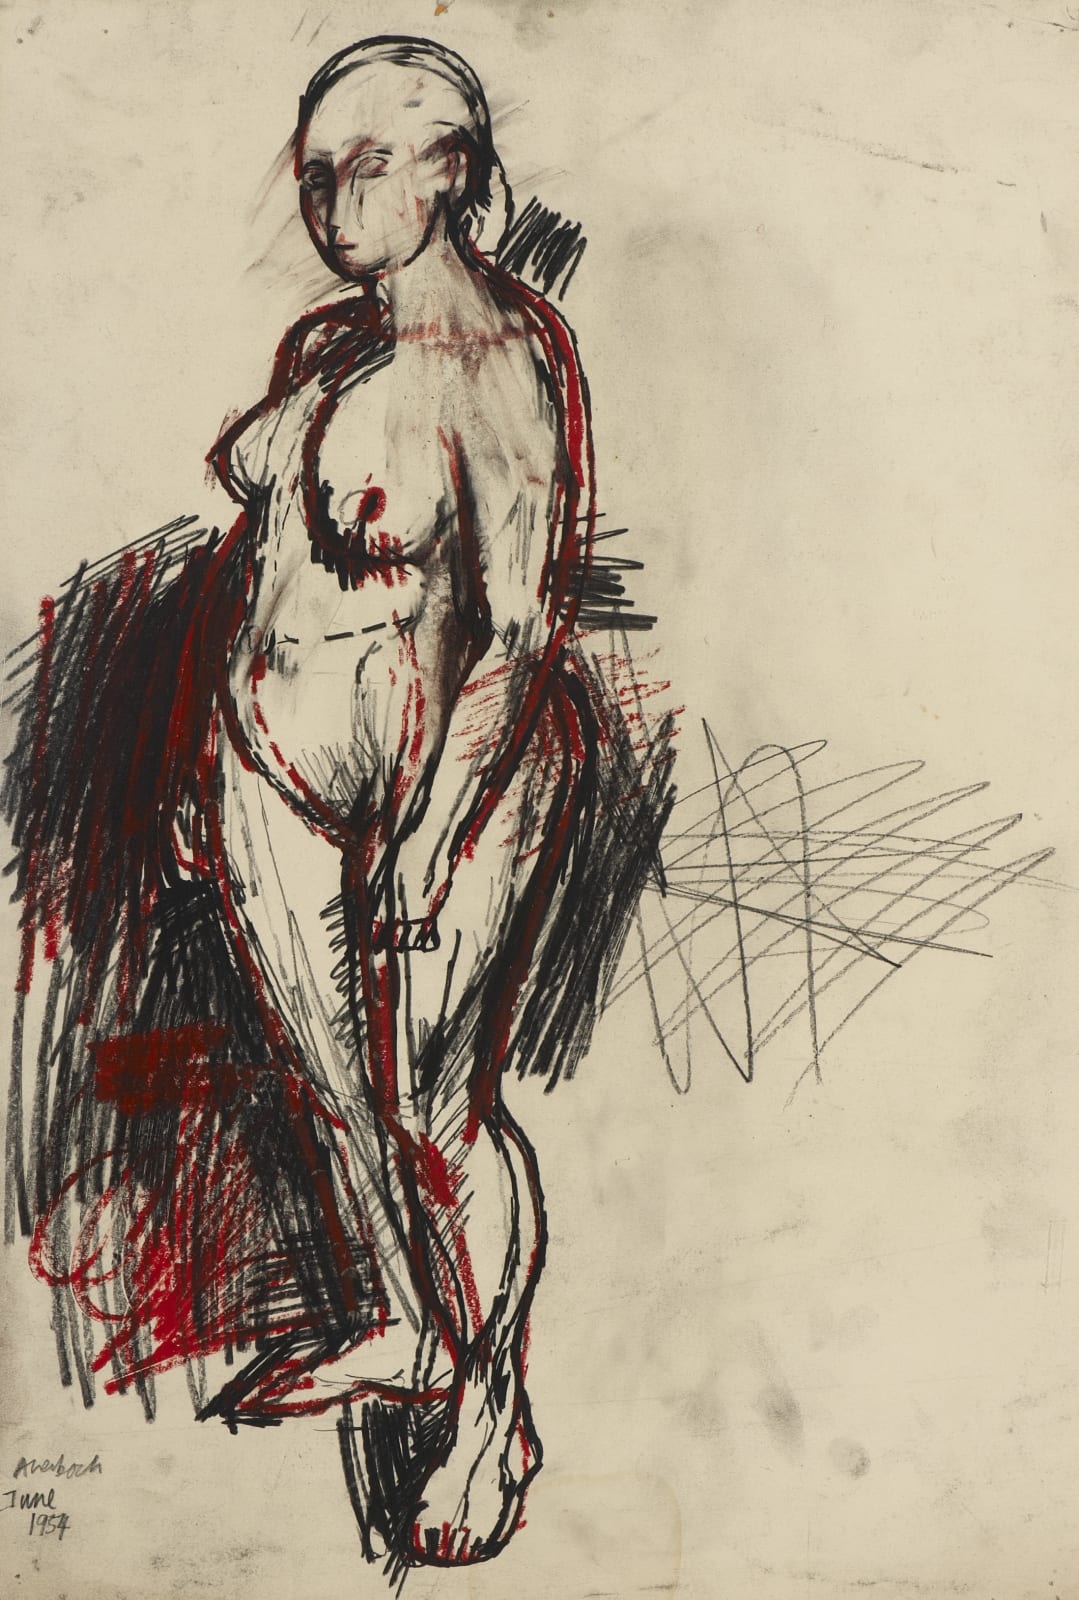 Frank Auerbach (1931-) Nude Standing 1954 Pencil, black and red crayon on paper 55 x 37.6 cm Ben Uri Collection © Frank Auerbach, courtesy of Marlborough Fine Art To see and discover more about this artist click here